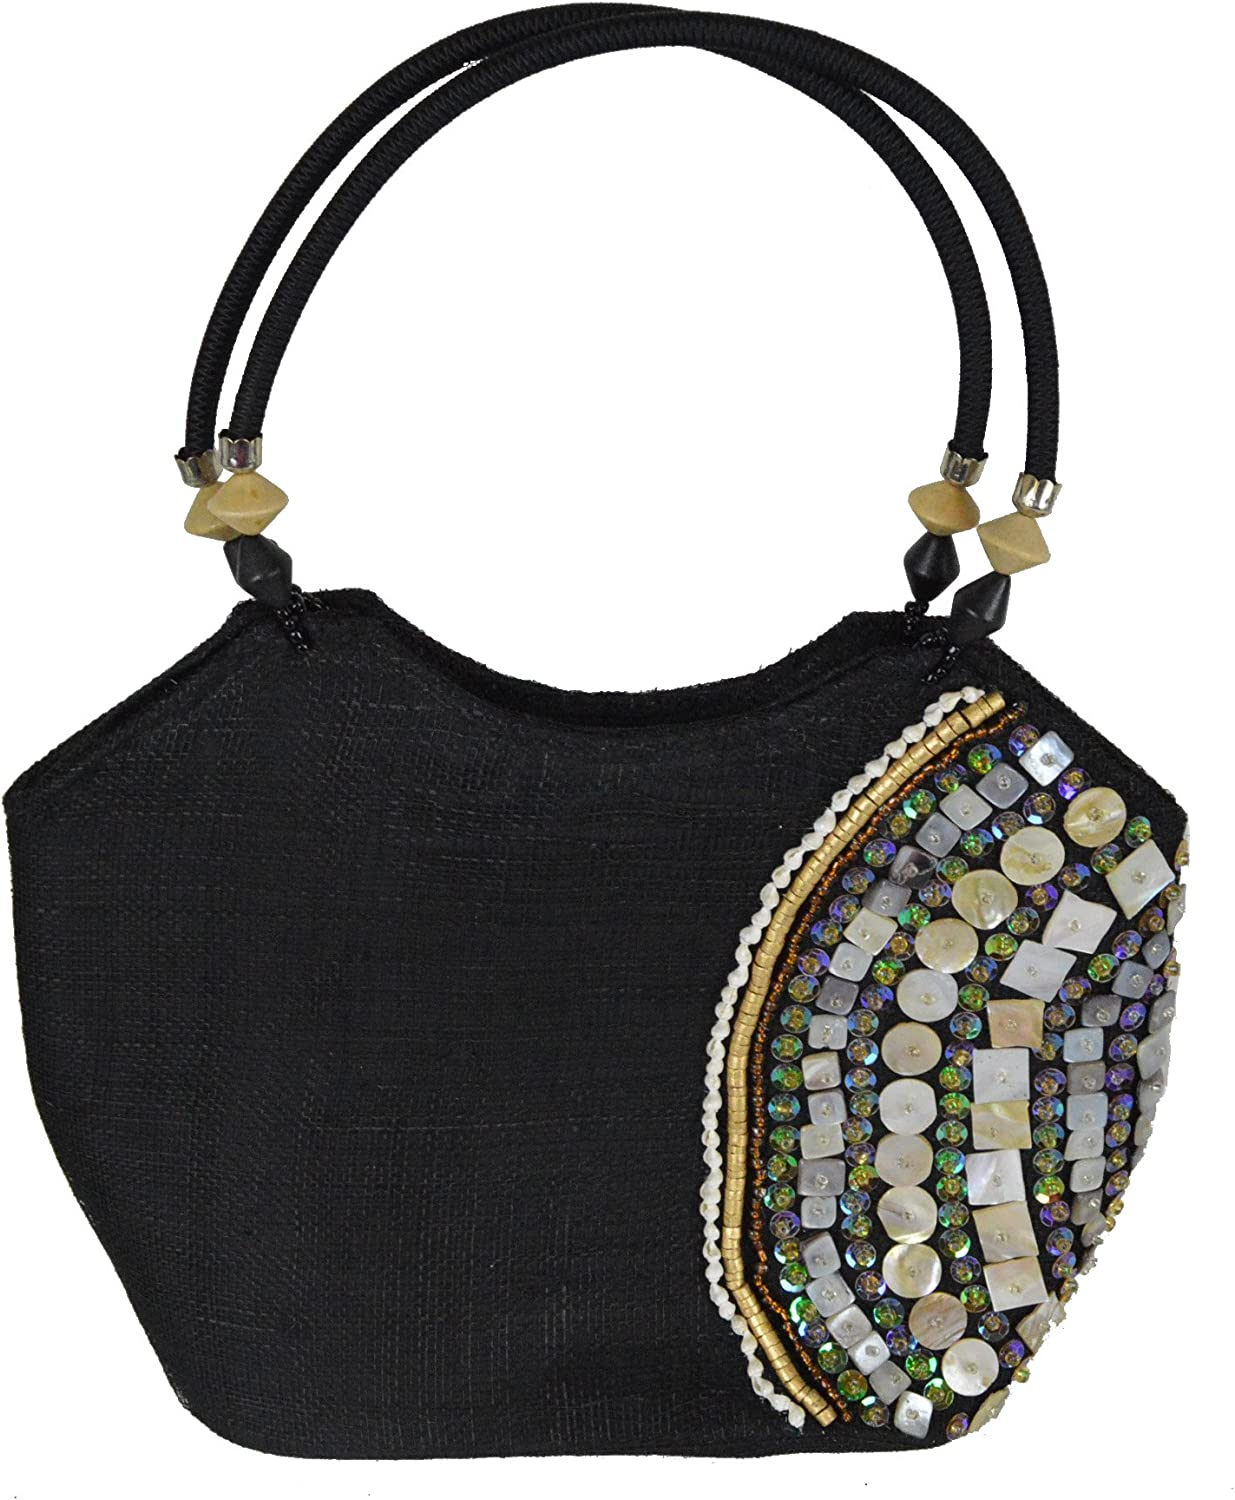 12 L Belize Black Medium ToteStyle Handbag with Seashell and Bead Inlay and Double Fabric Handles